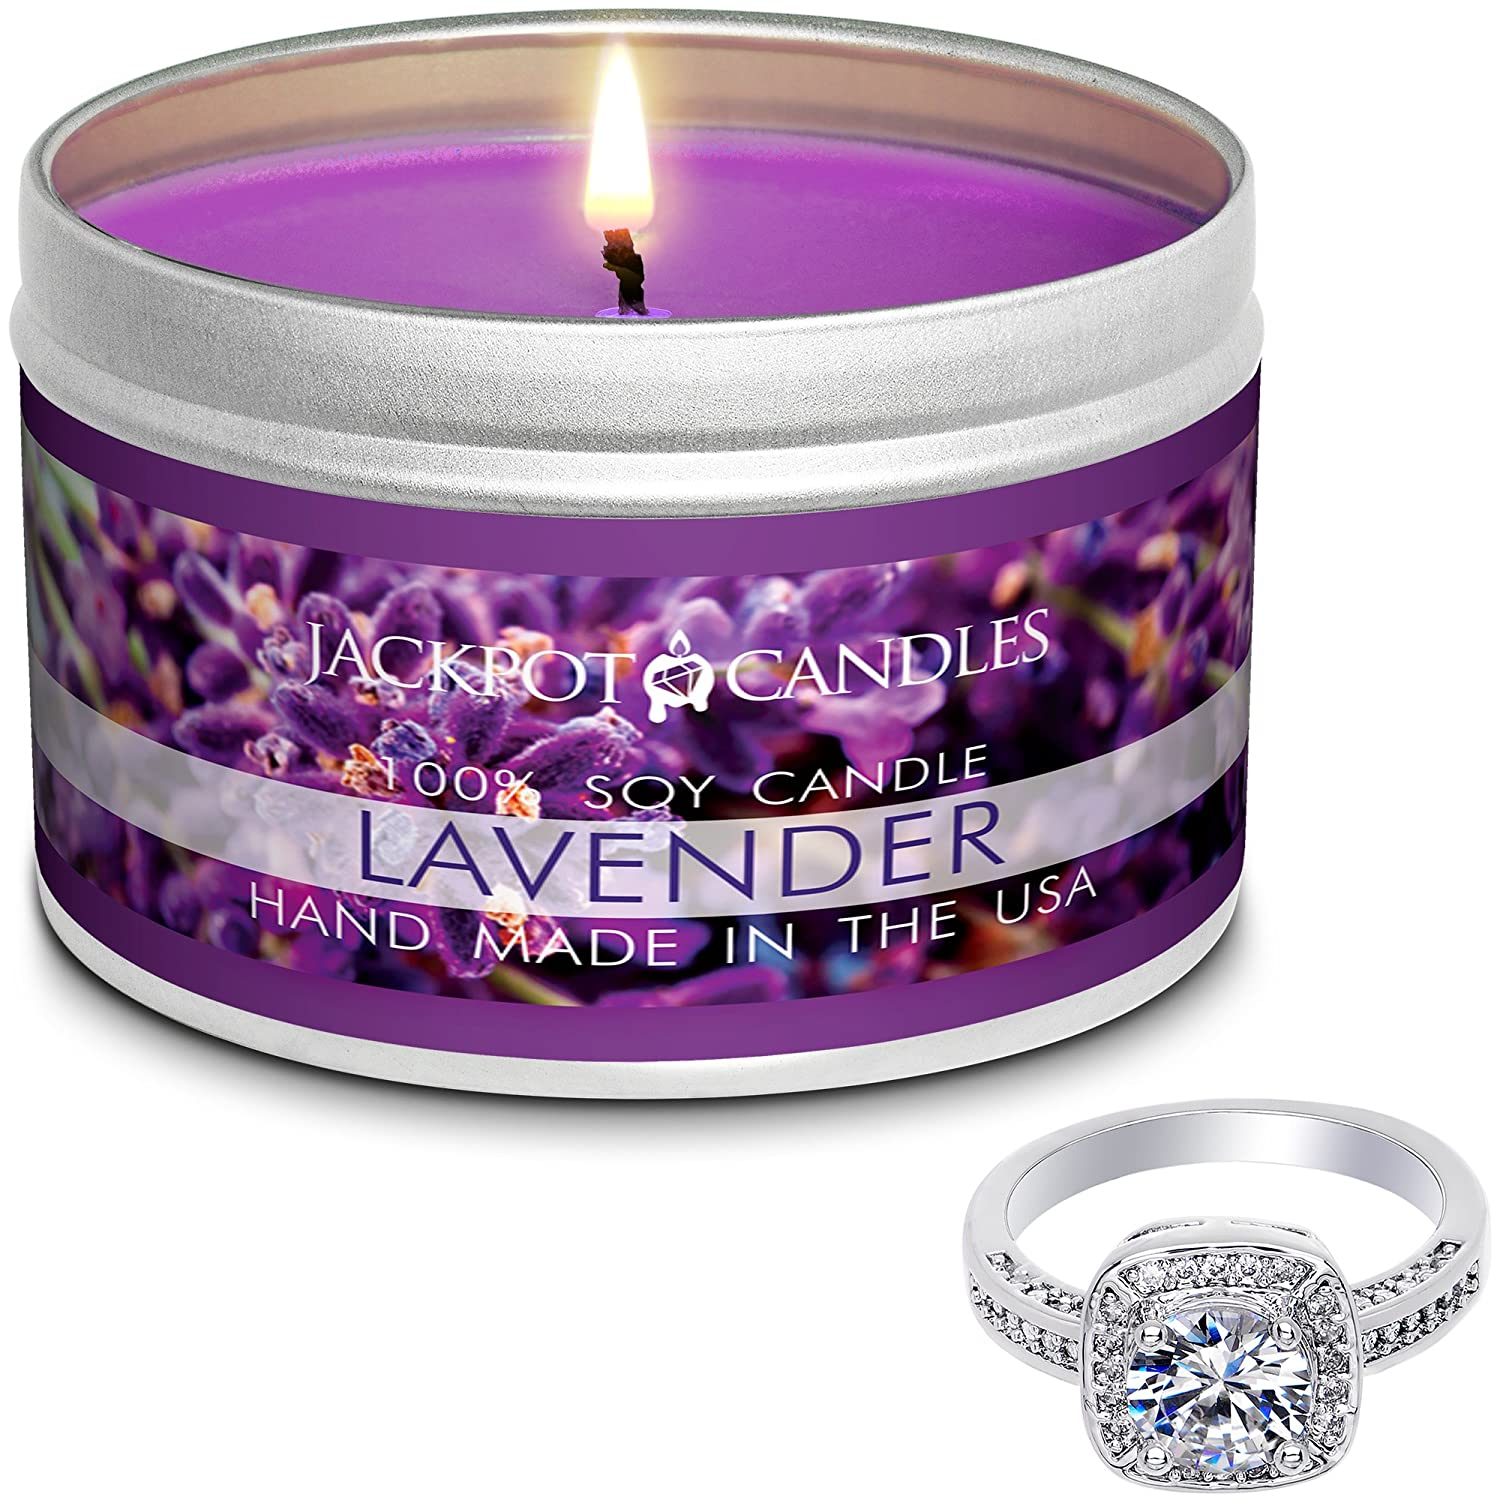 Jackpot Candles Surprise Size Ring Lavender Jewelry Candle Travel Tin TIN-330-RNG-SURPRISE